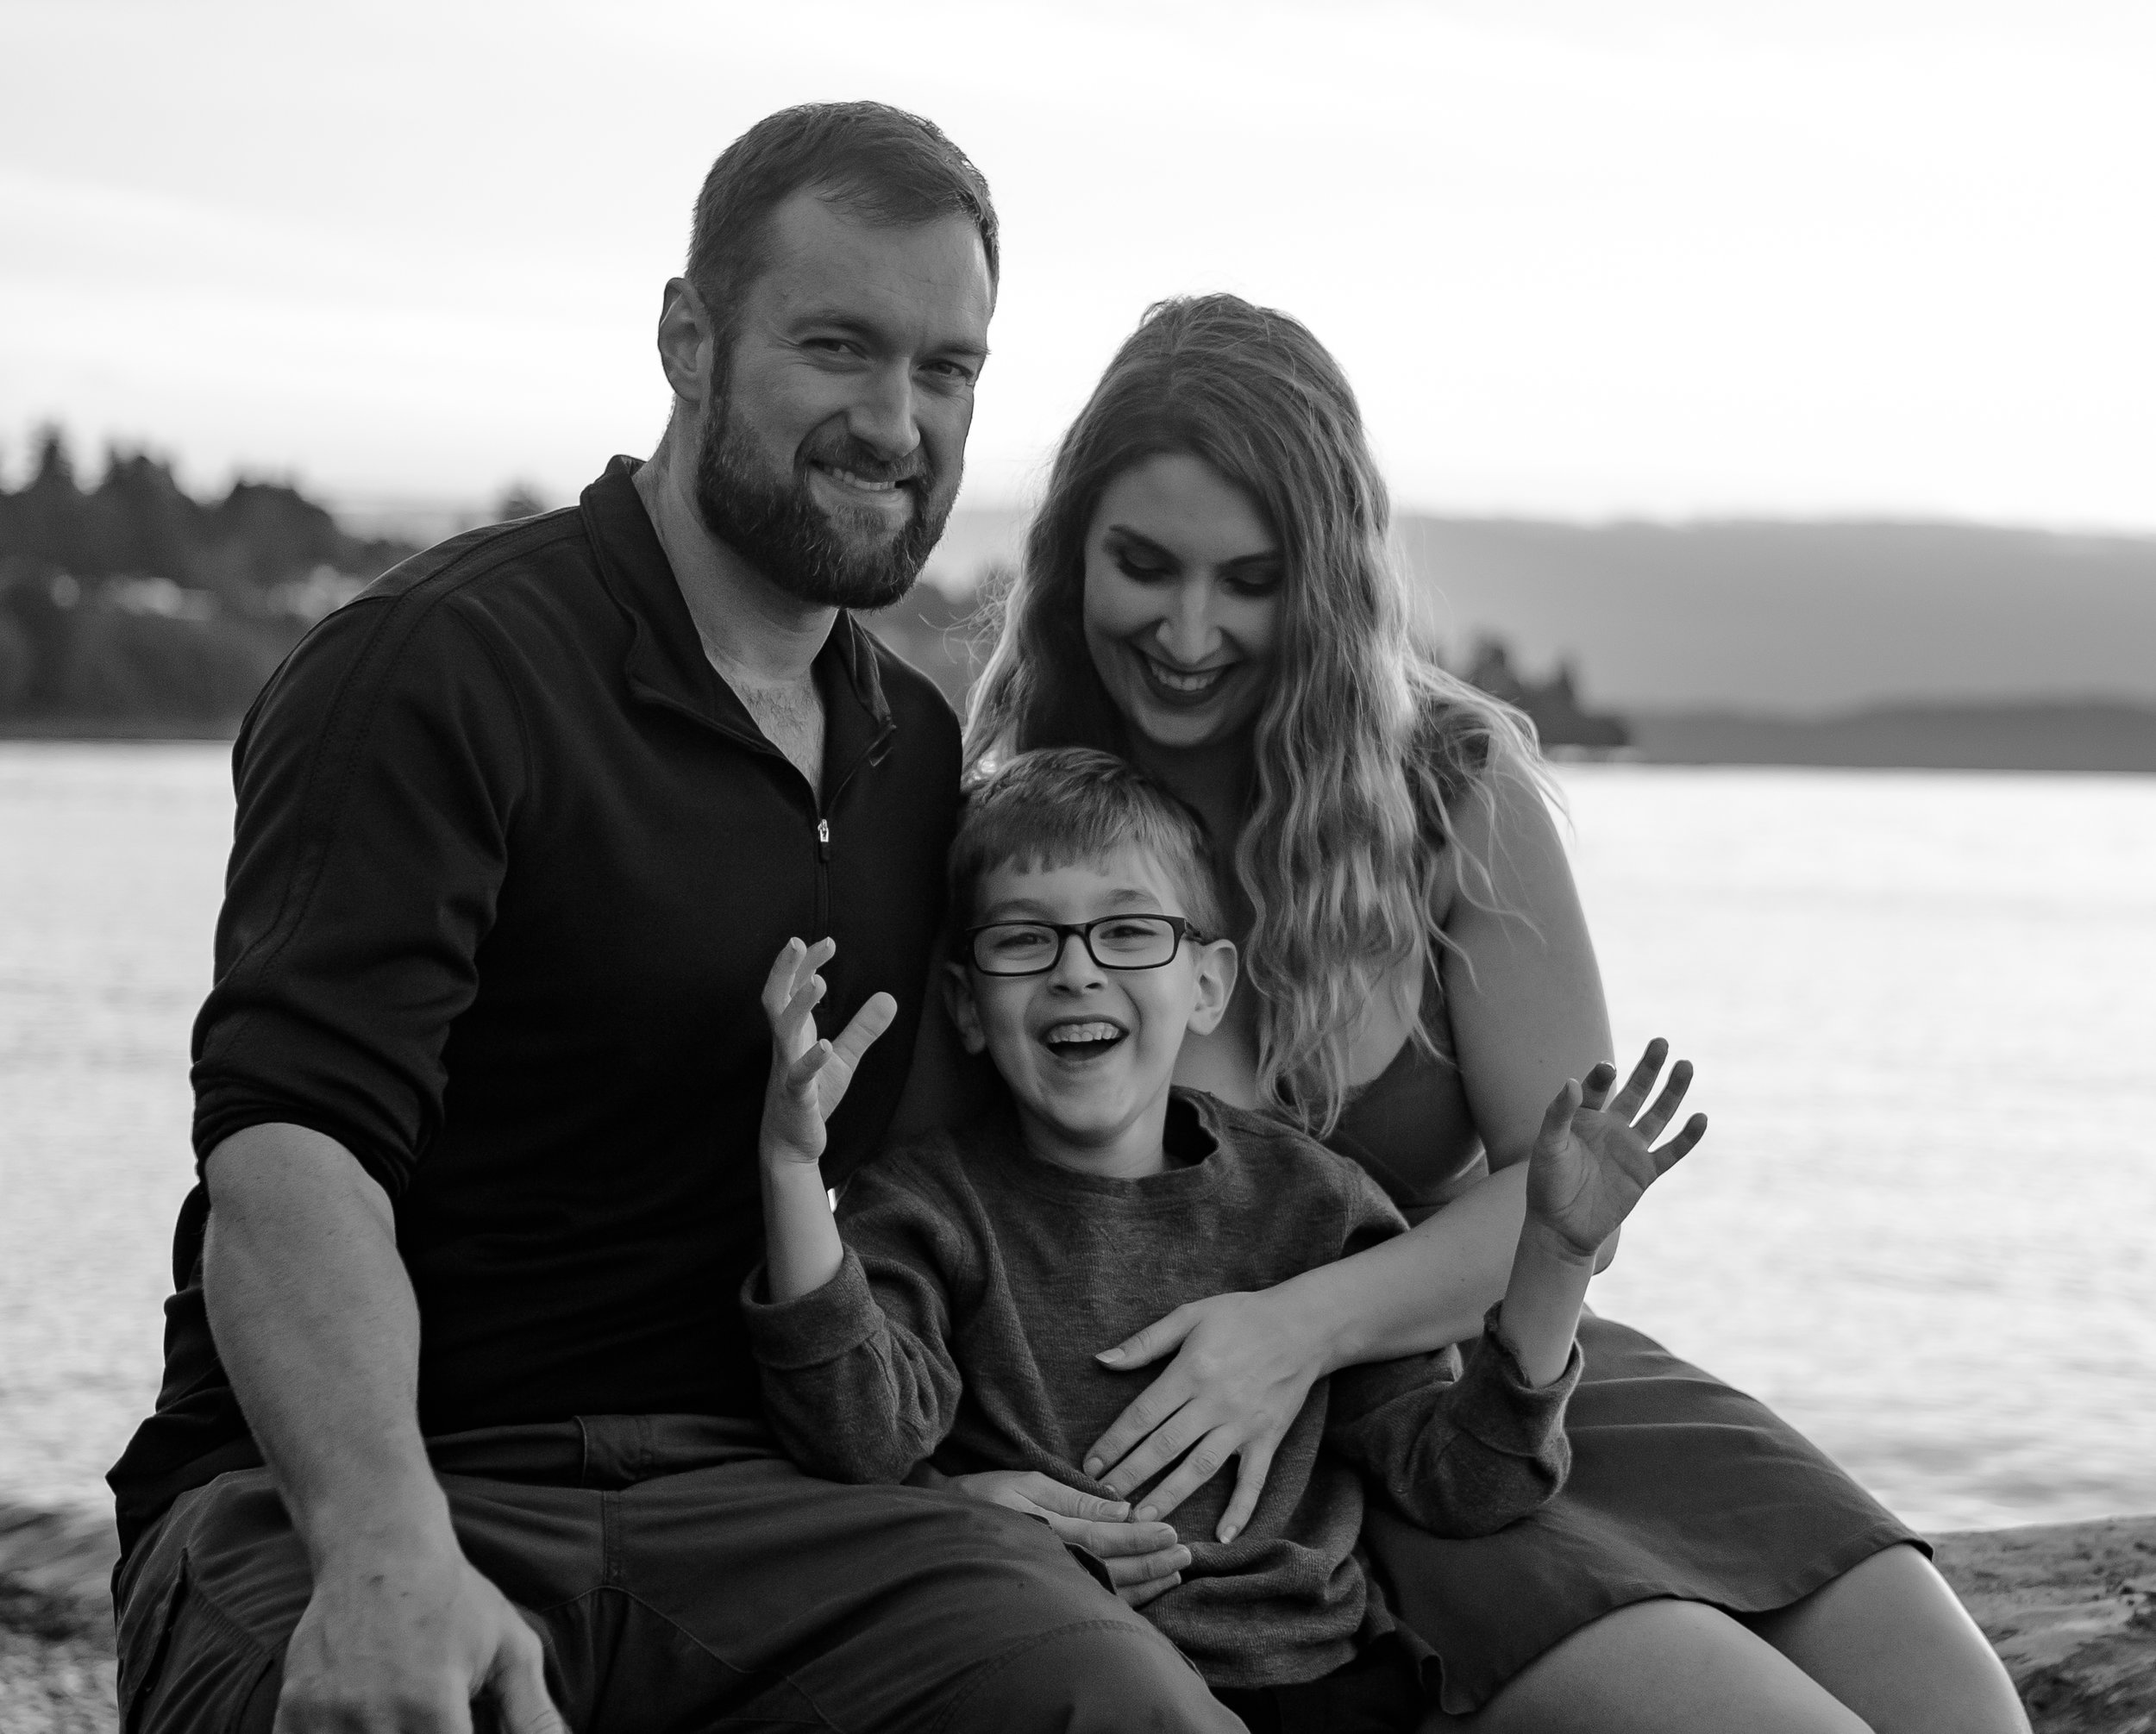 candid moment of Lake Stevens famiy in black and white